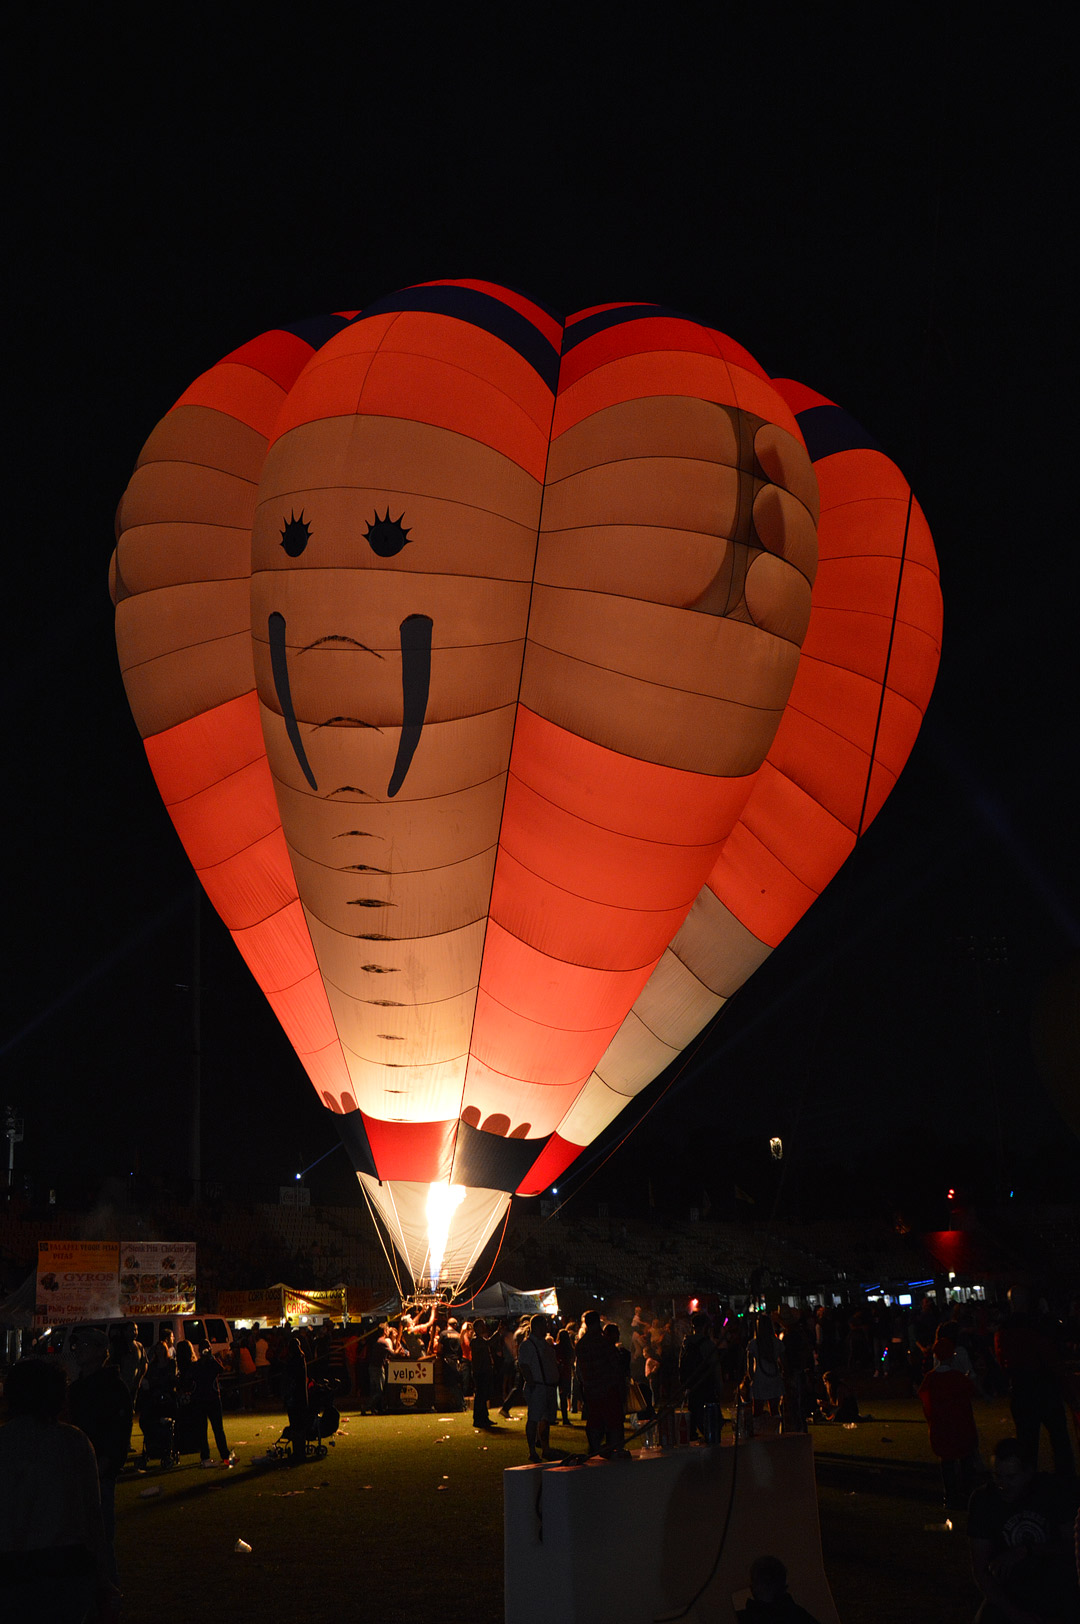 Owl o Ween Hot Air Balloon Festival + 13 Unforgettable Fall Activities and Pumpkin Patches in Georgia // Local Adventurer #georgia #fall #autumn #hotairballoons #fallfestival